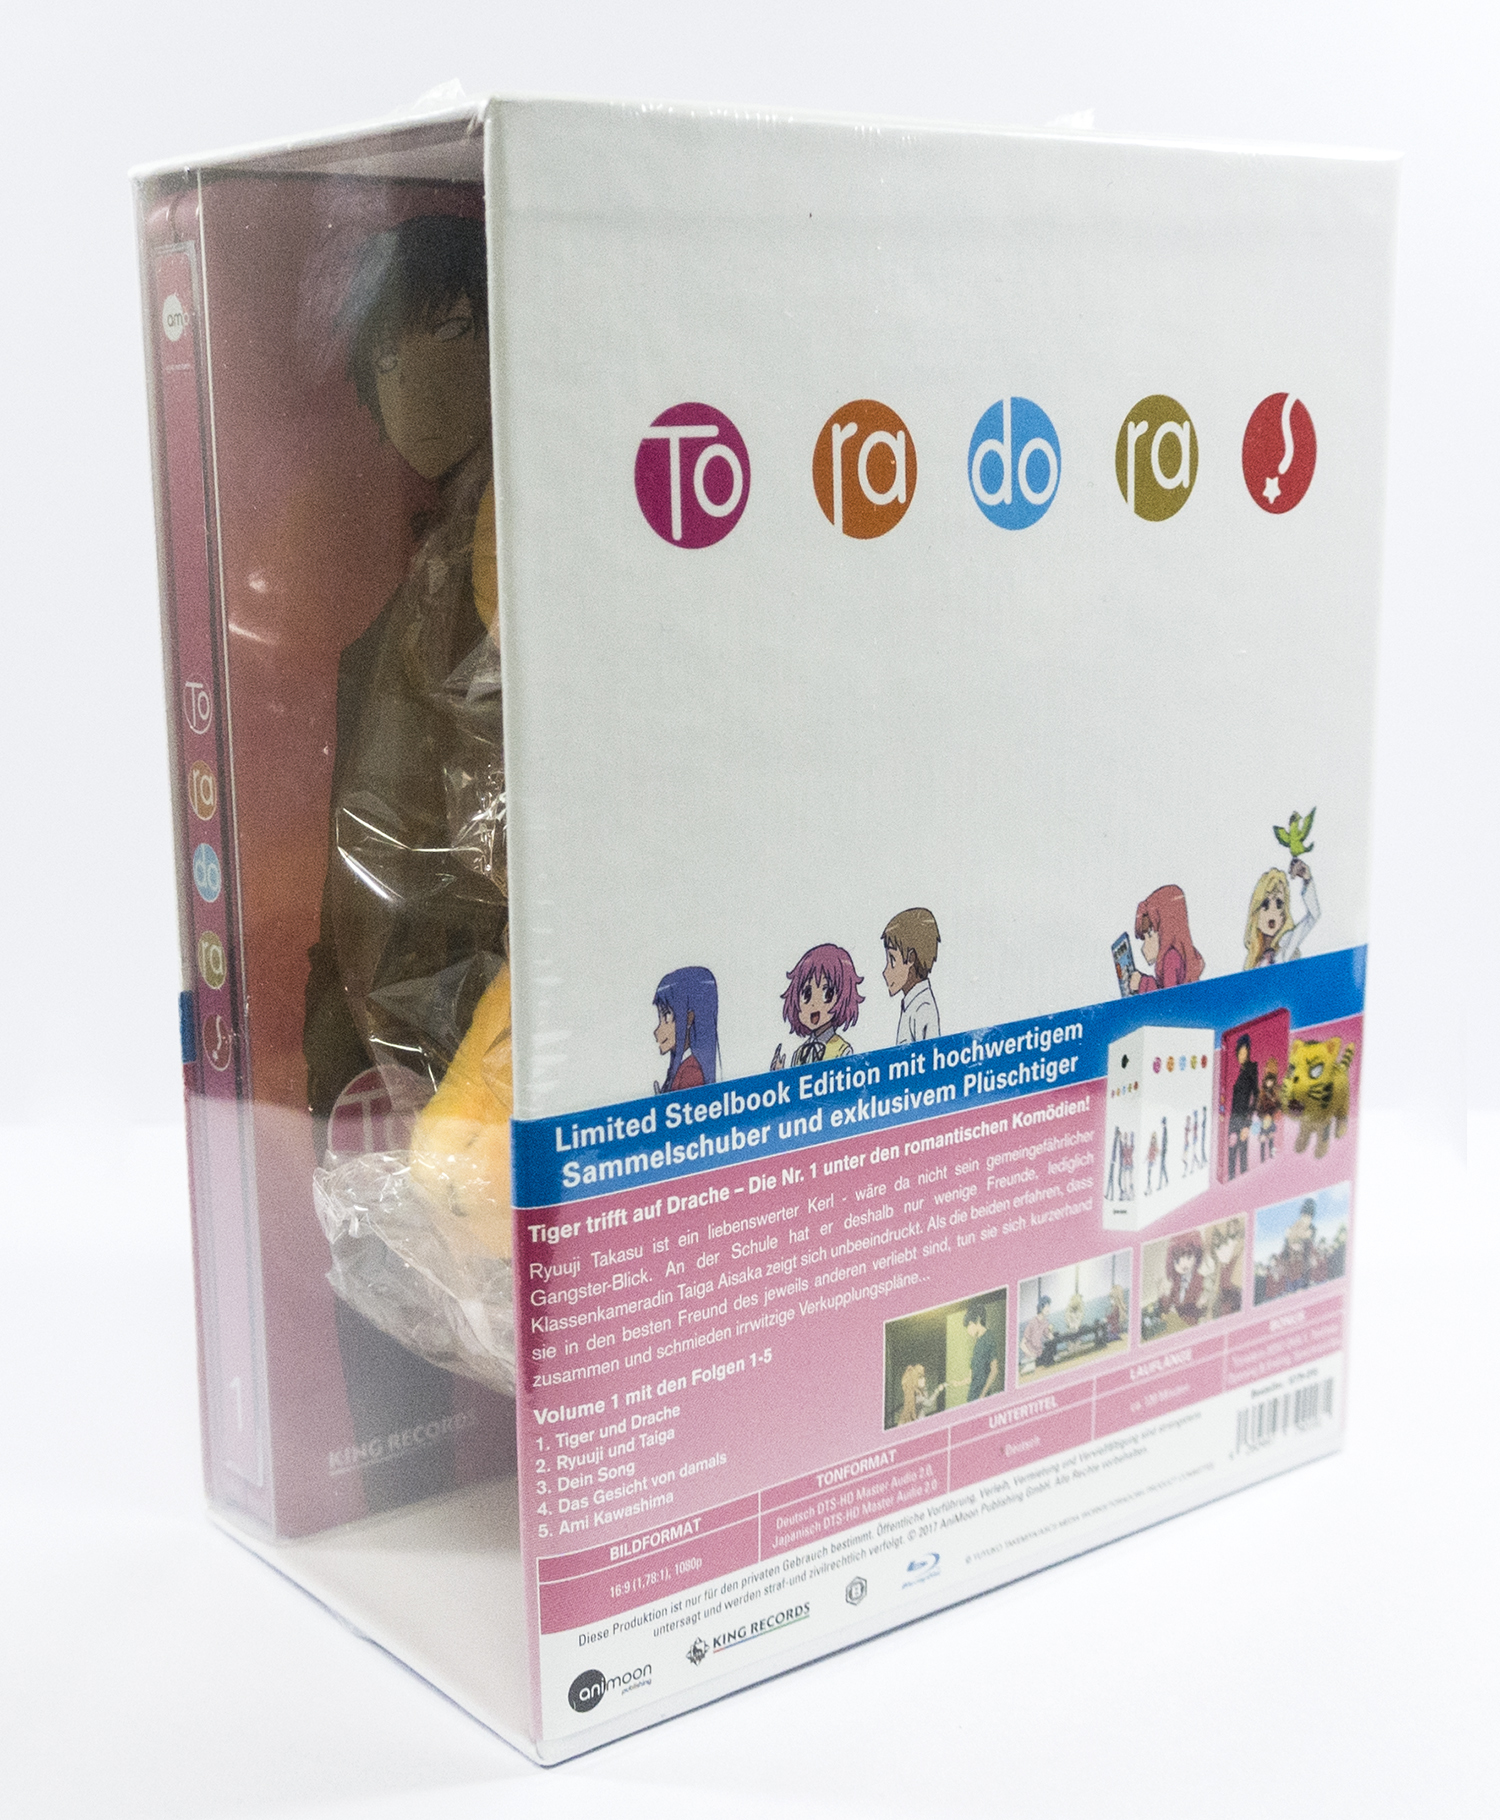 とらドラ! Vol.1 ドイツ スチールブック Toradora! Vol. 1 - Limited Steelbook Edition